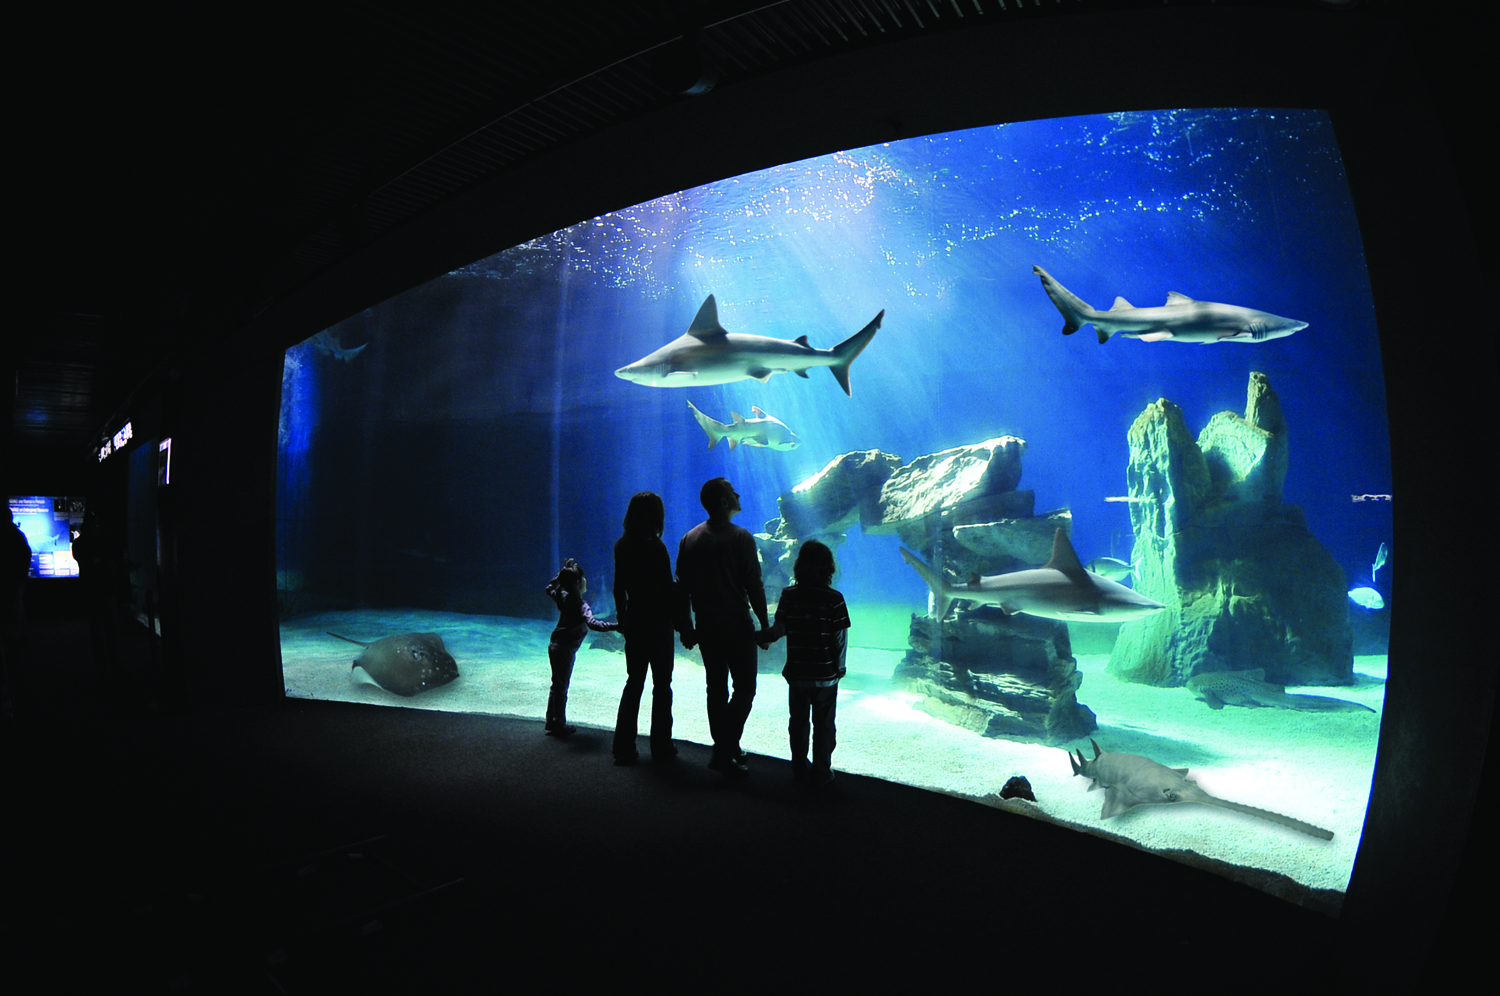 MSC Cruises offers an exclusive tour of Italy's largest aquarium.